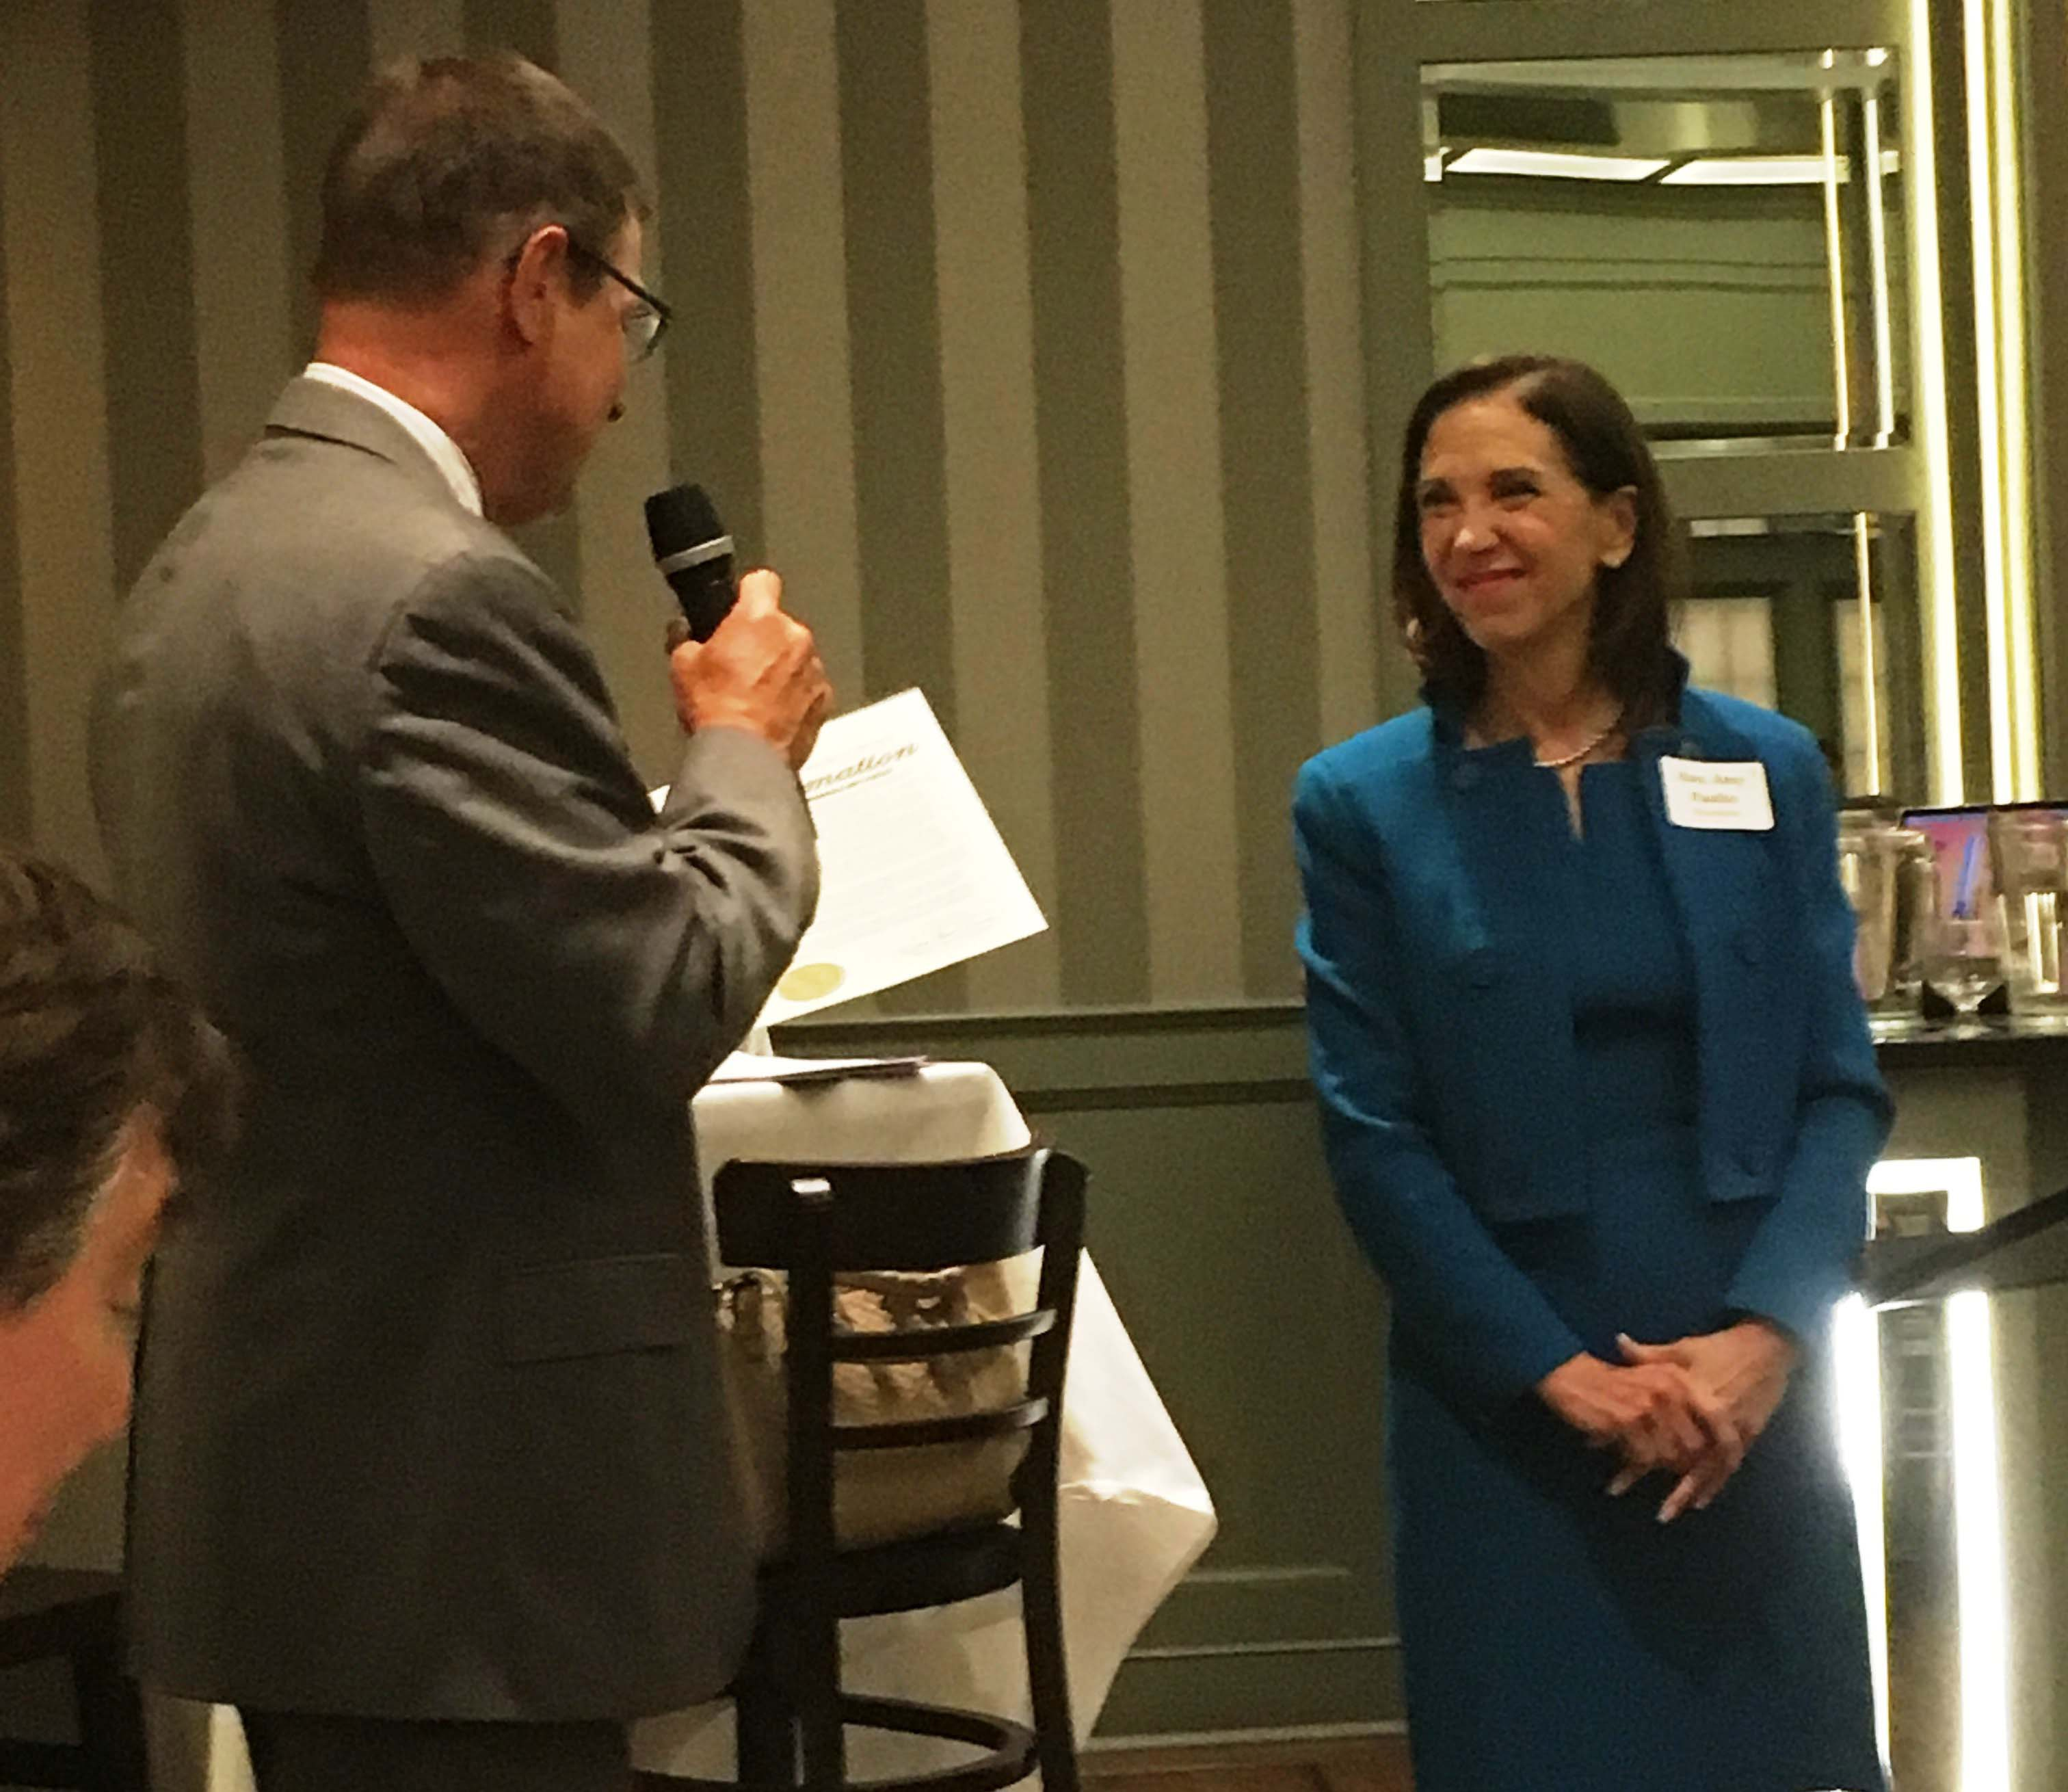 Assemblymember Amy Paulin was honored at the Westchester Regional Benefit for New Yorkers Against Gun Violence Education Fund on April 26, 2018. The event also honored former NYAGV Executive Director